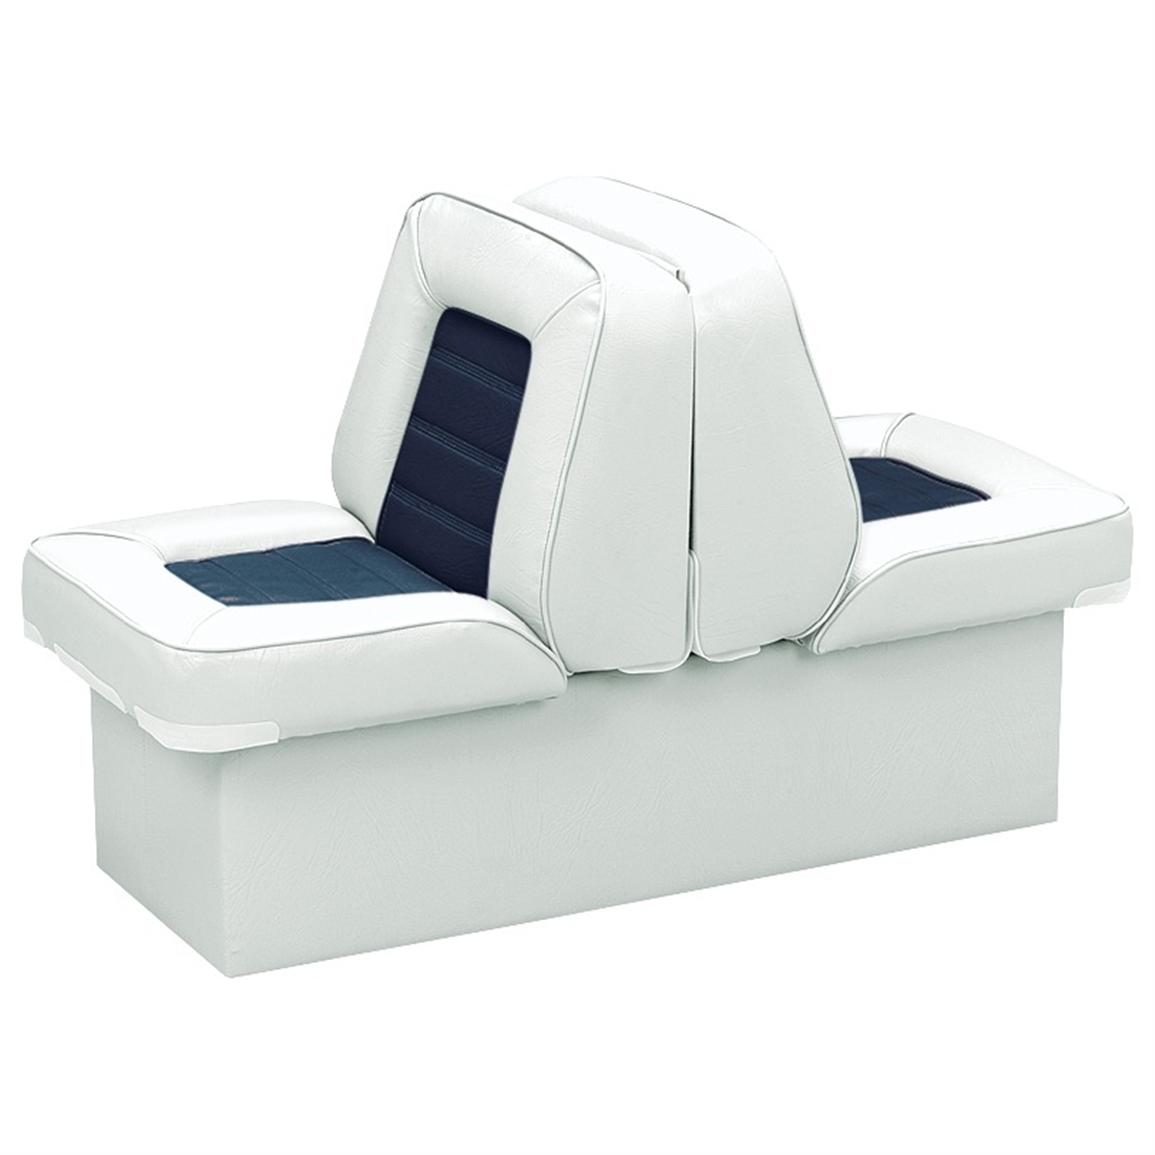 Wise Deluxe Boat Lounge Seat, White / Navy